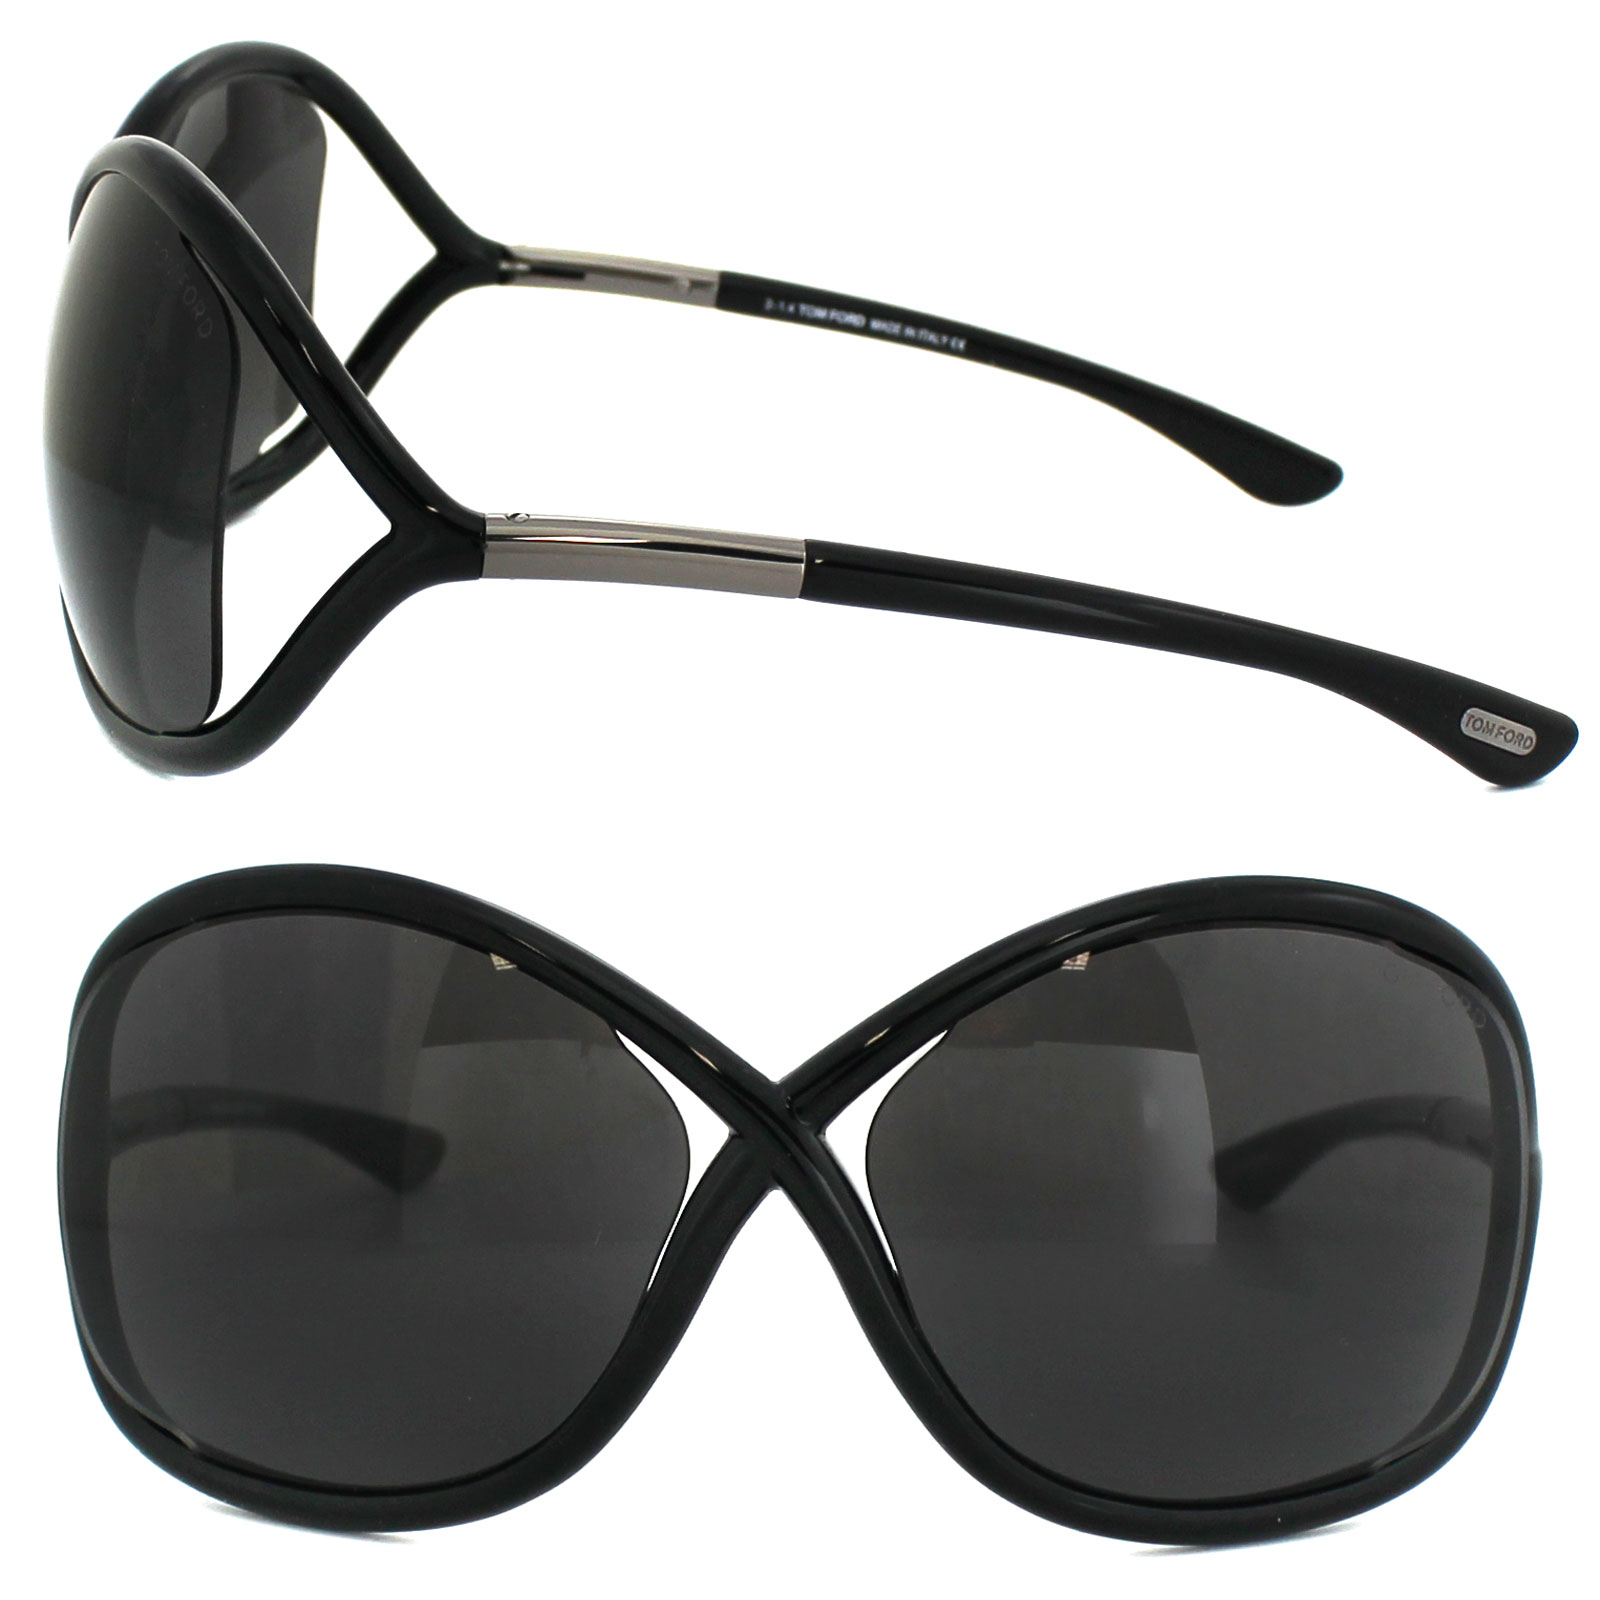 Cheap Tom Ford 0009 Whitney Sunglasses Discounted Sunglasses